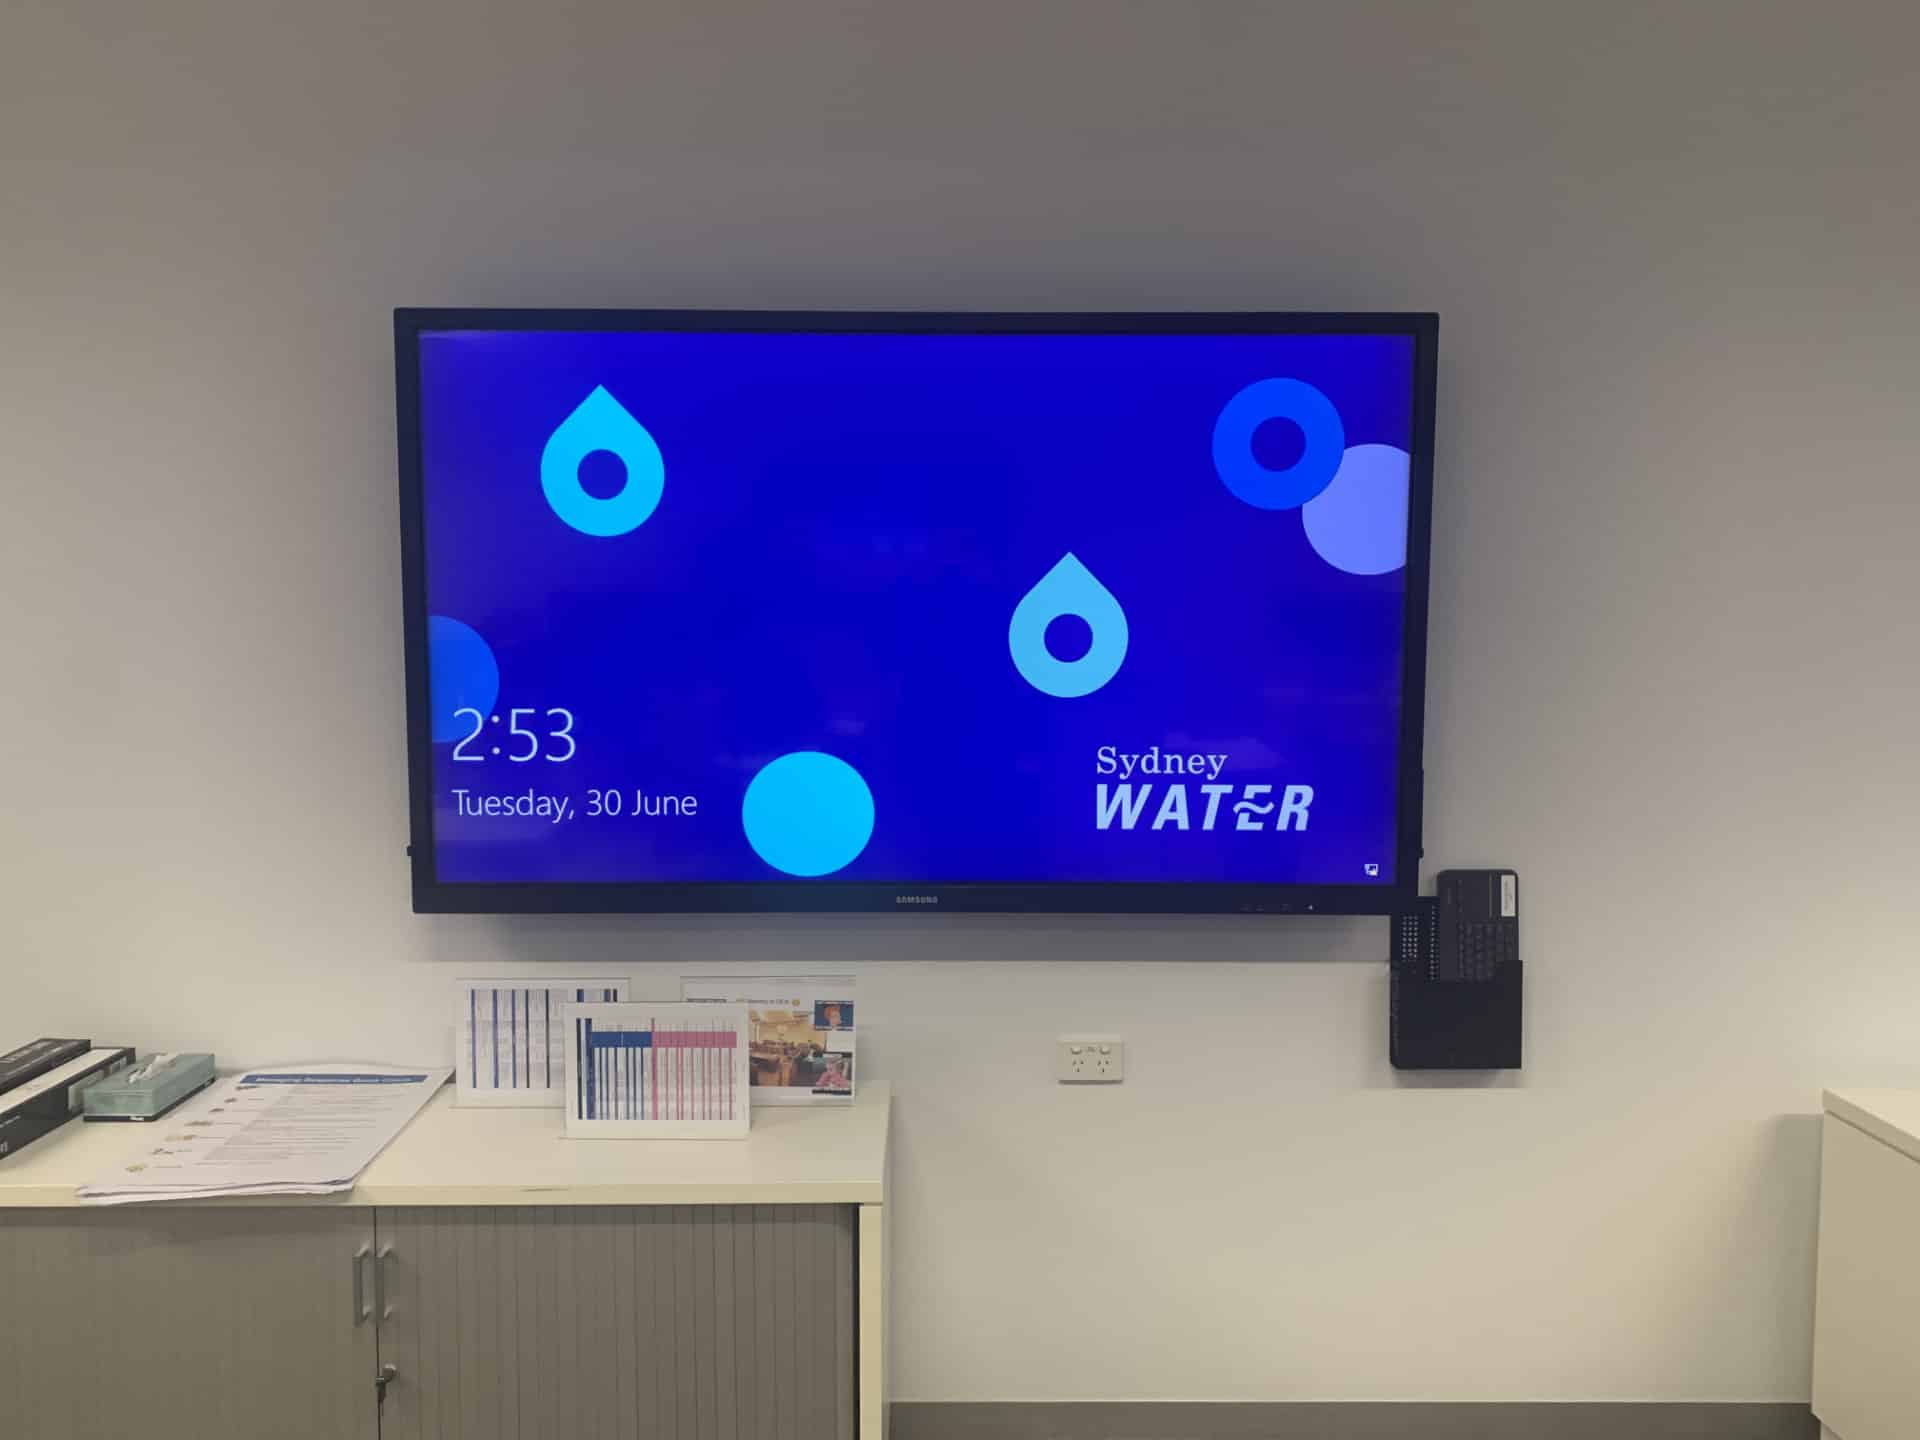 TV for Sydney Water